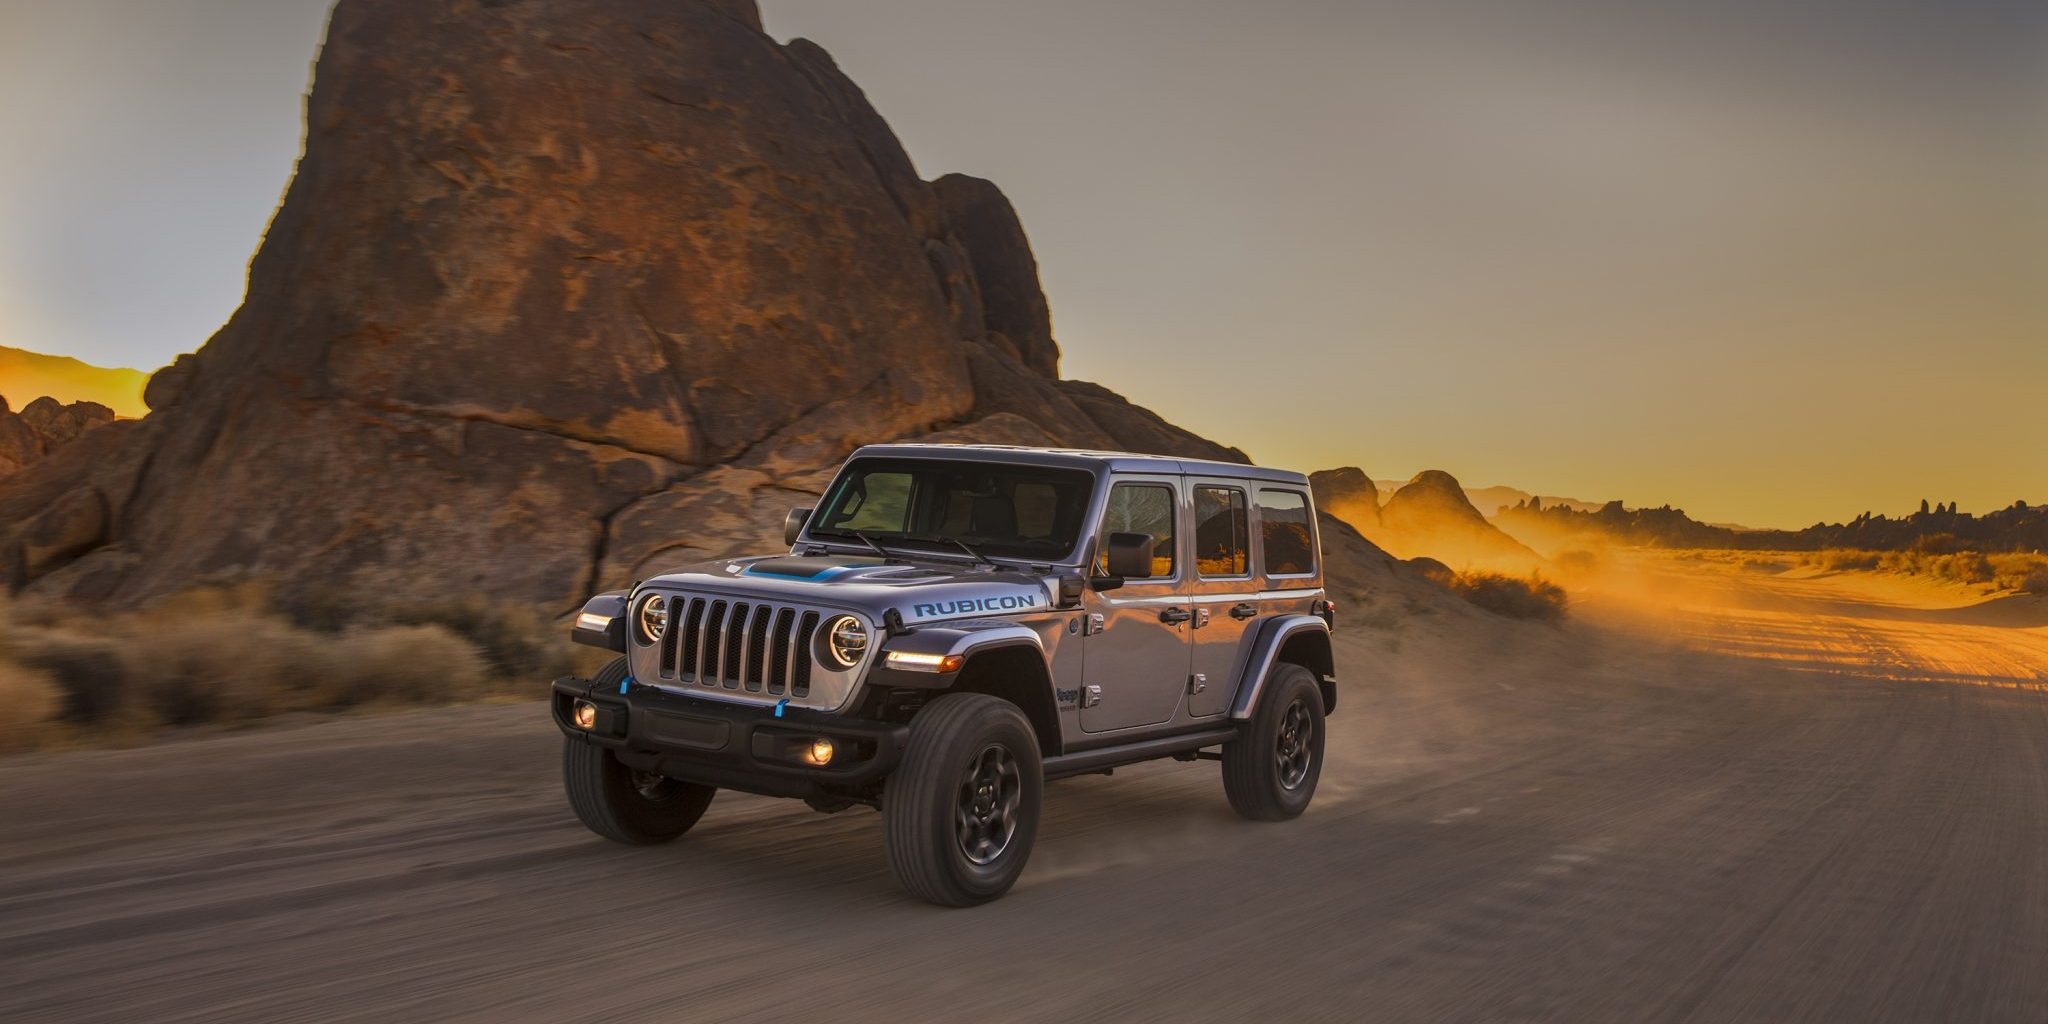 Hybrid Wrangler 4xe: A sign of the times?